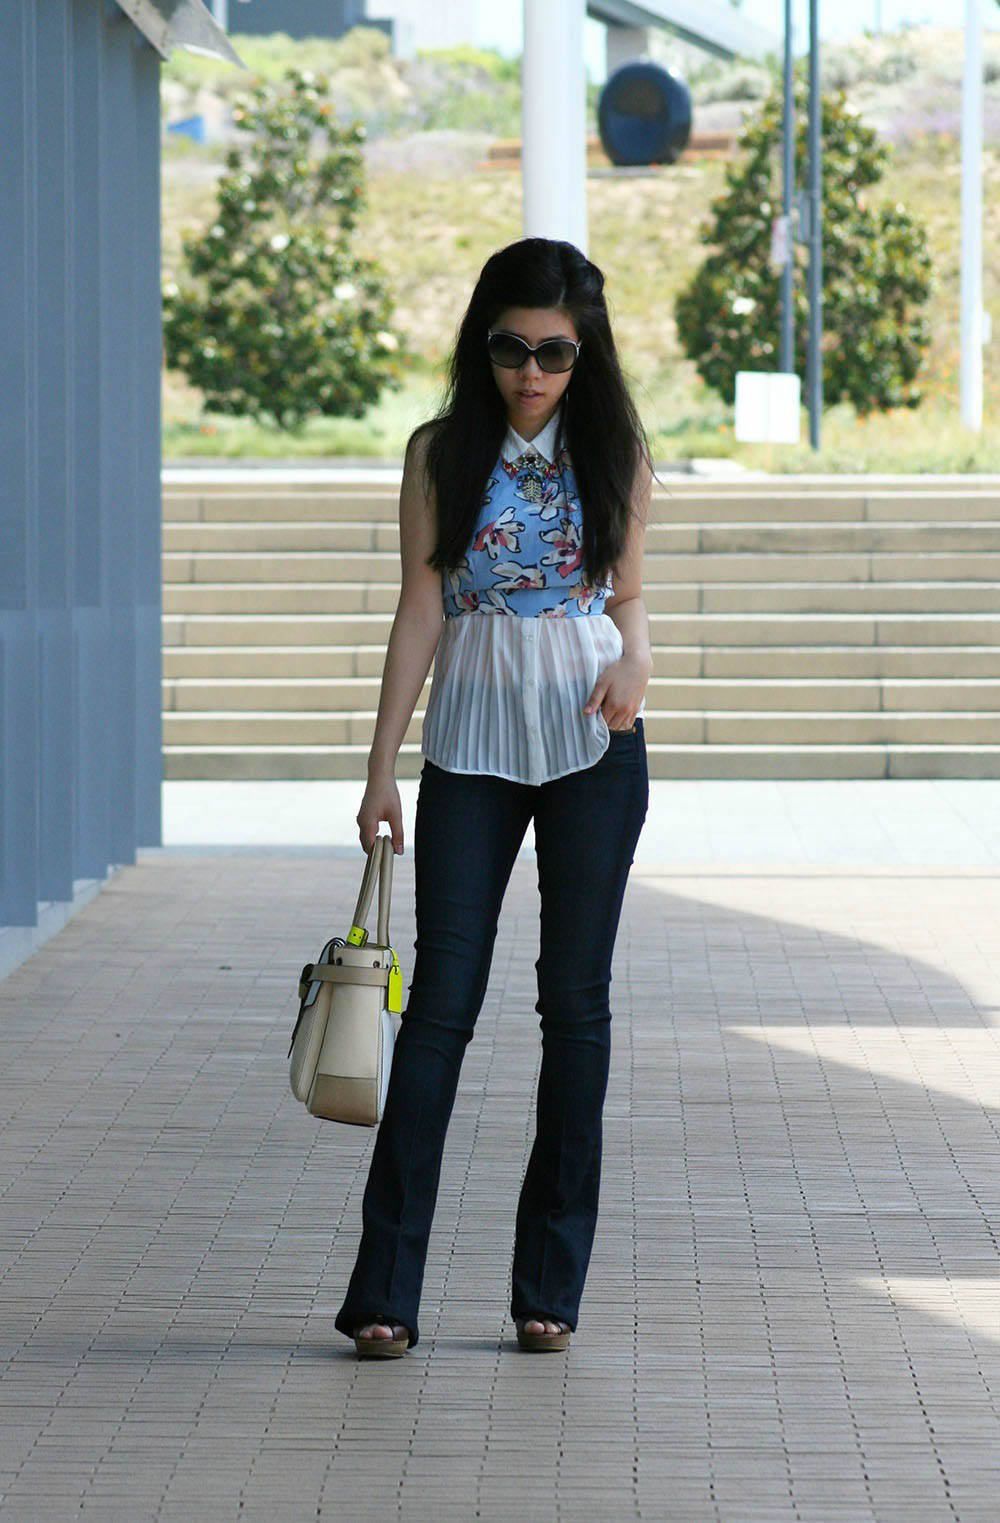 adrienne nguyen_Invictus_fashion blogger_floral crop top by l'atist los angeles with pleated top